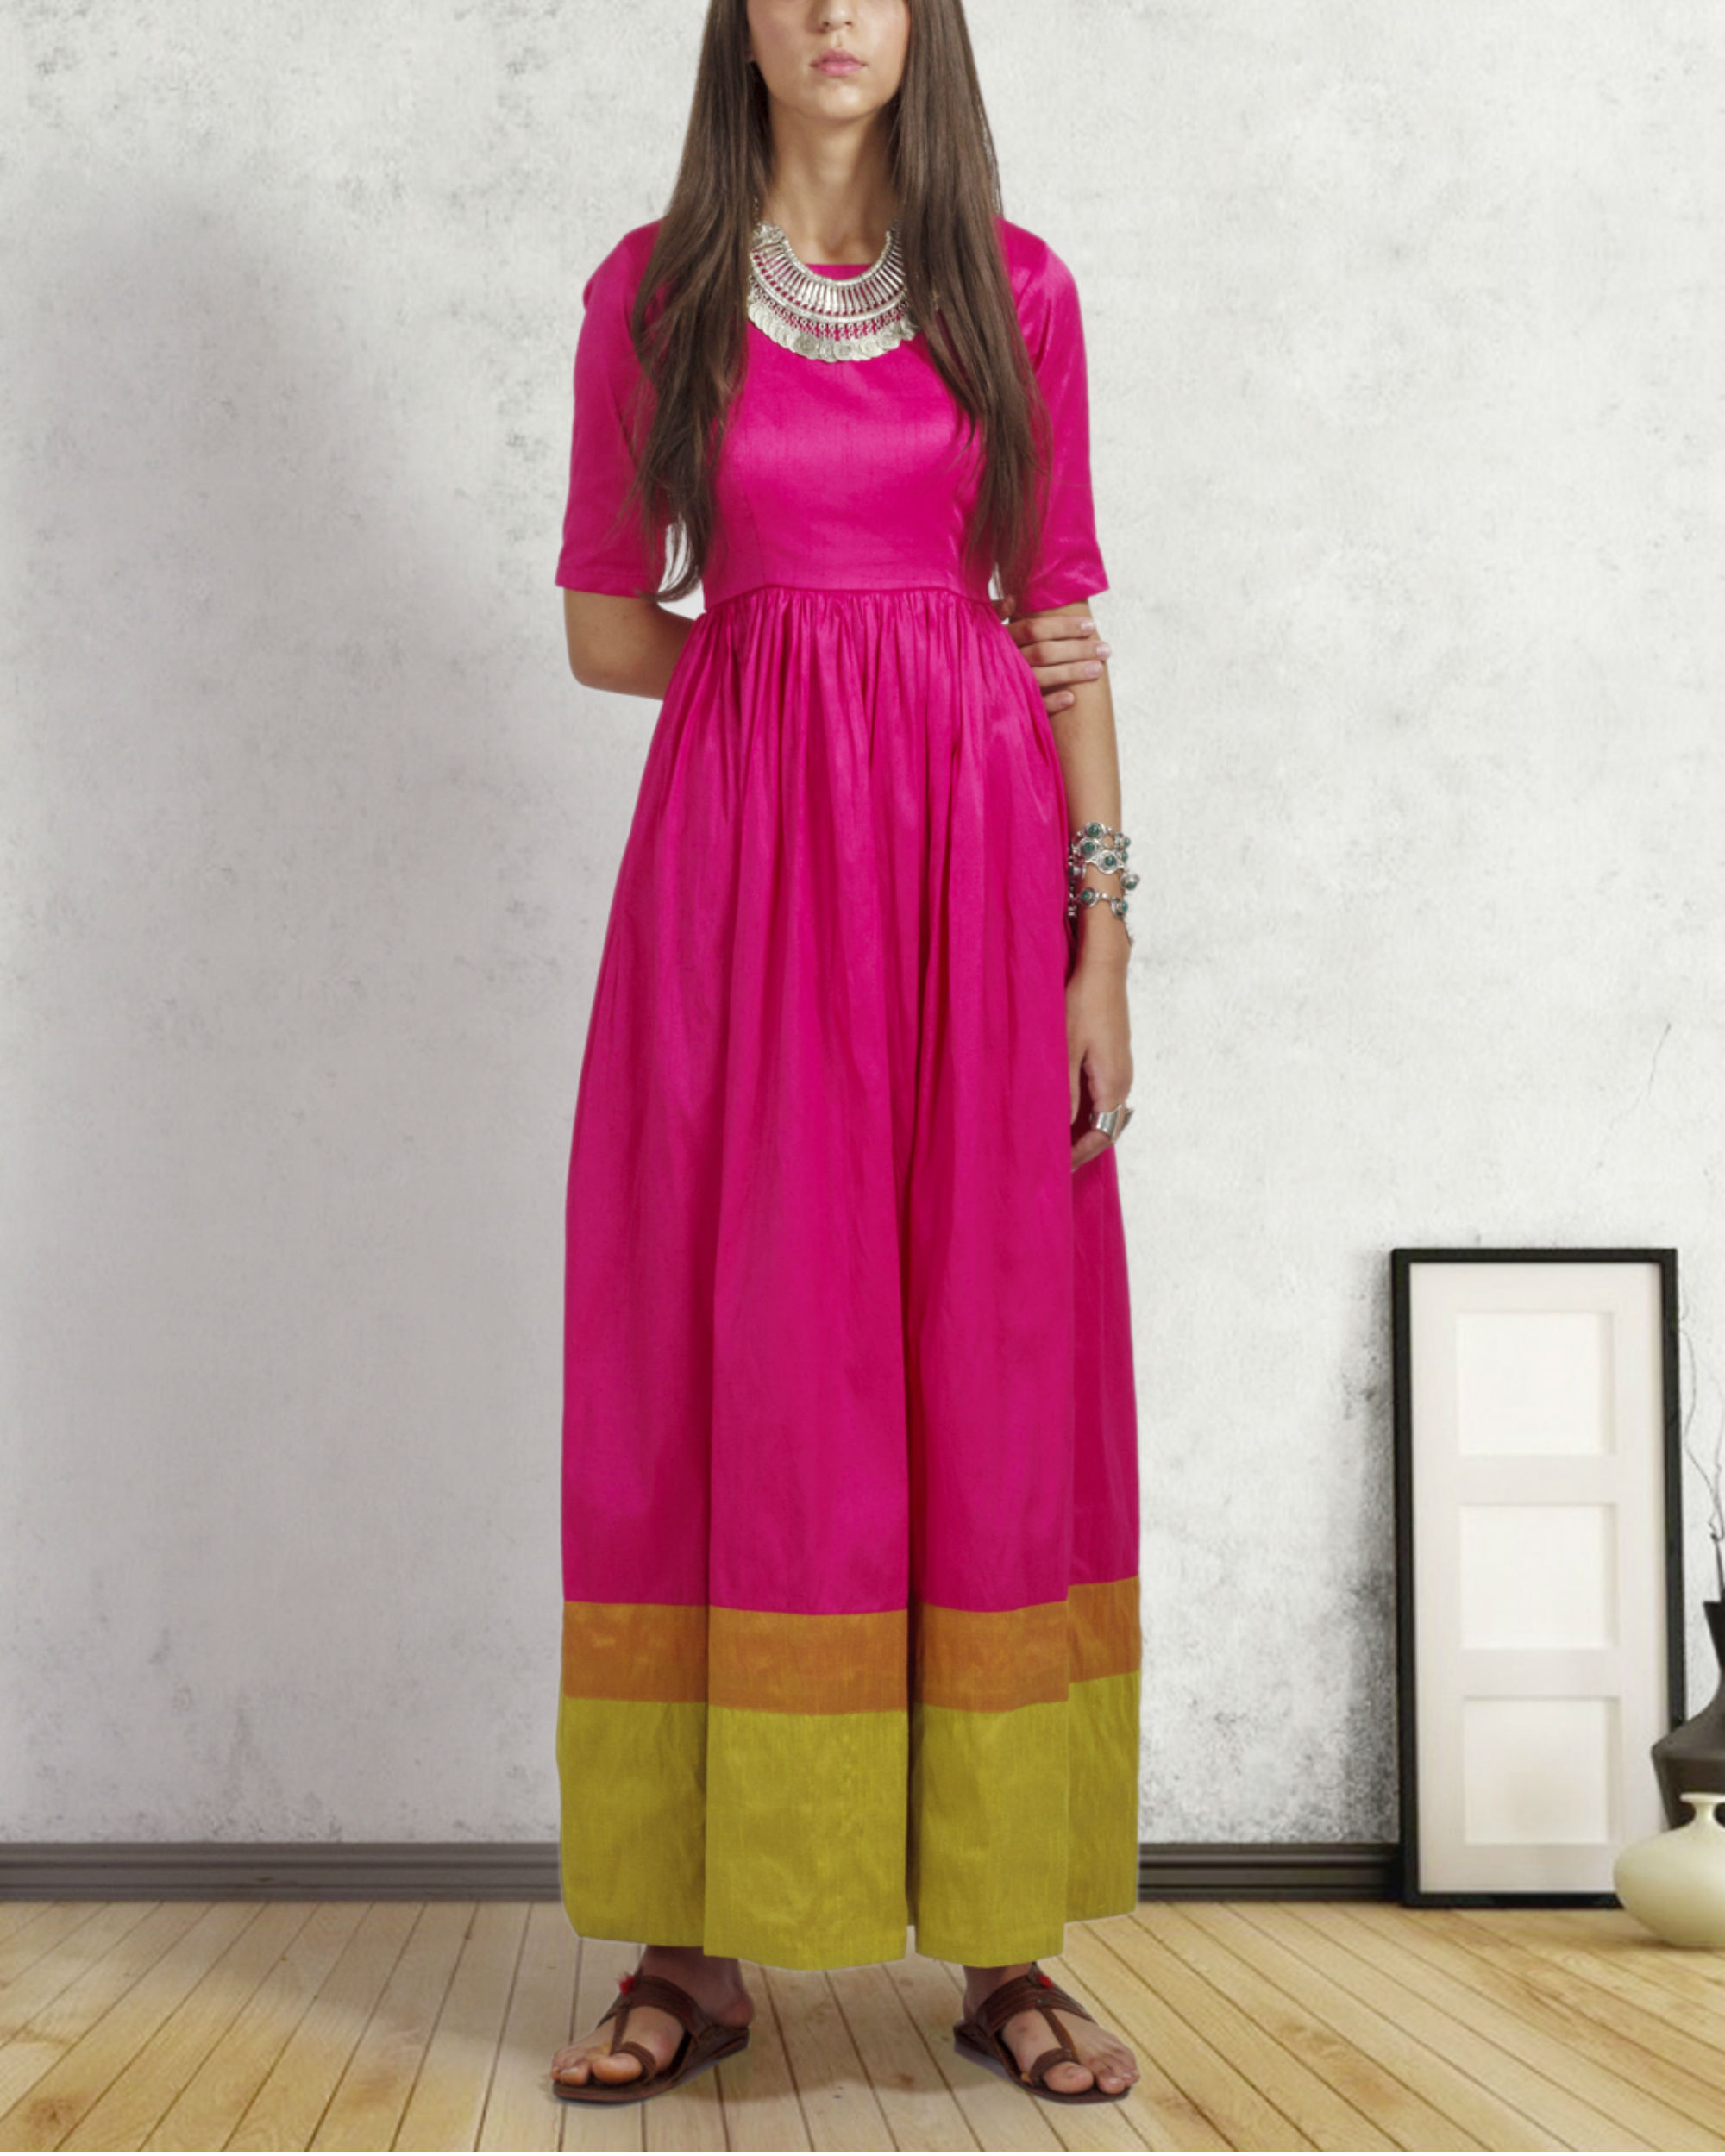 Bright pink double border dress